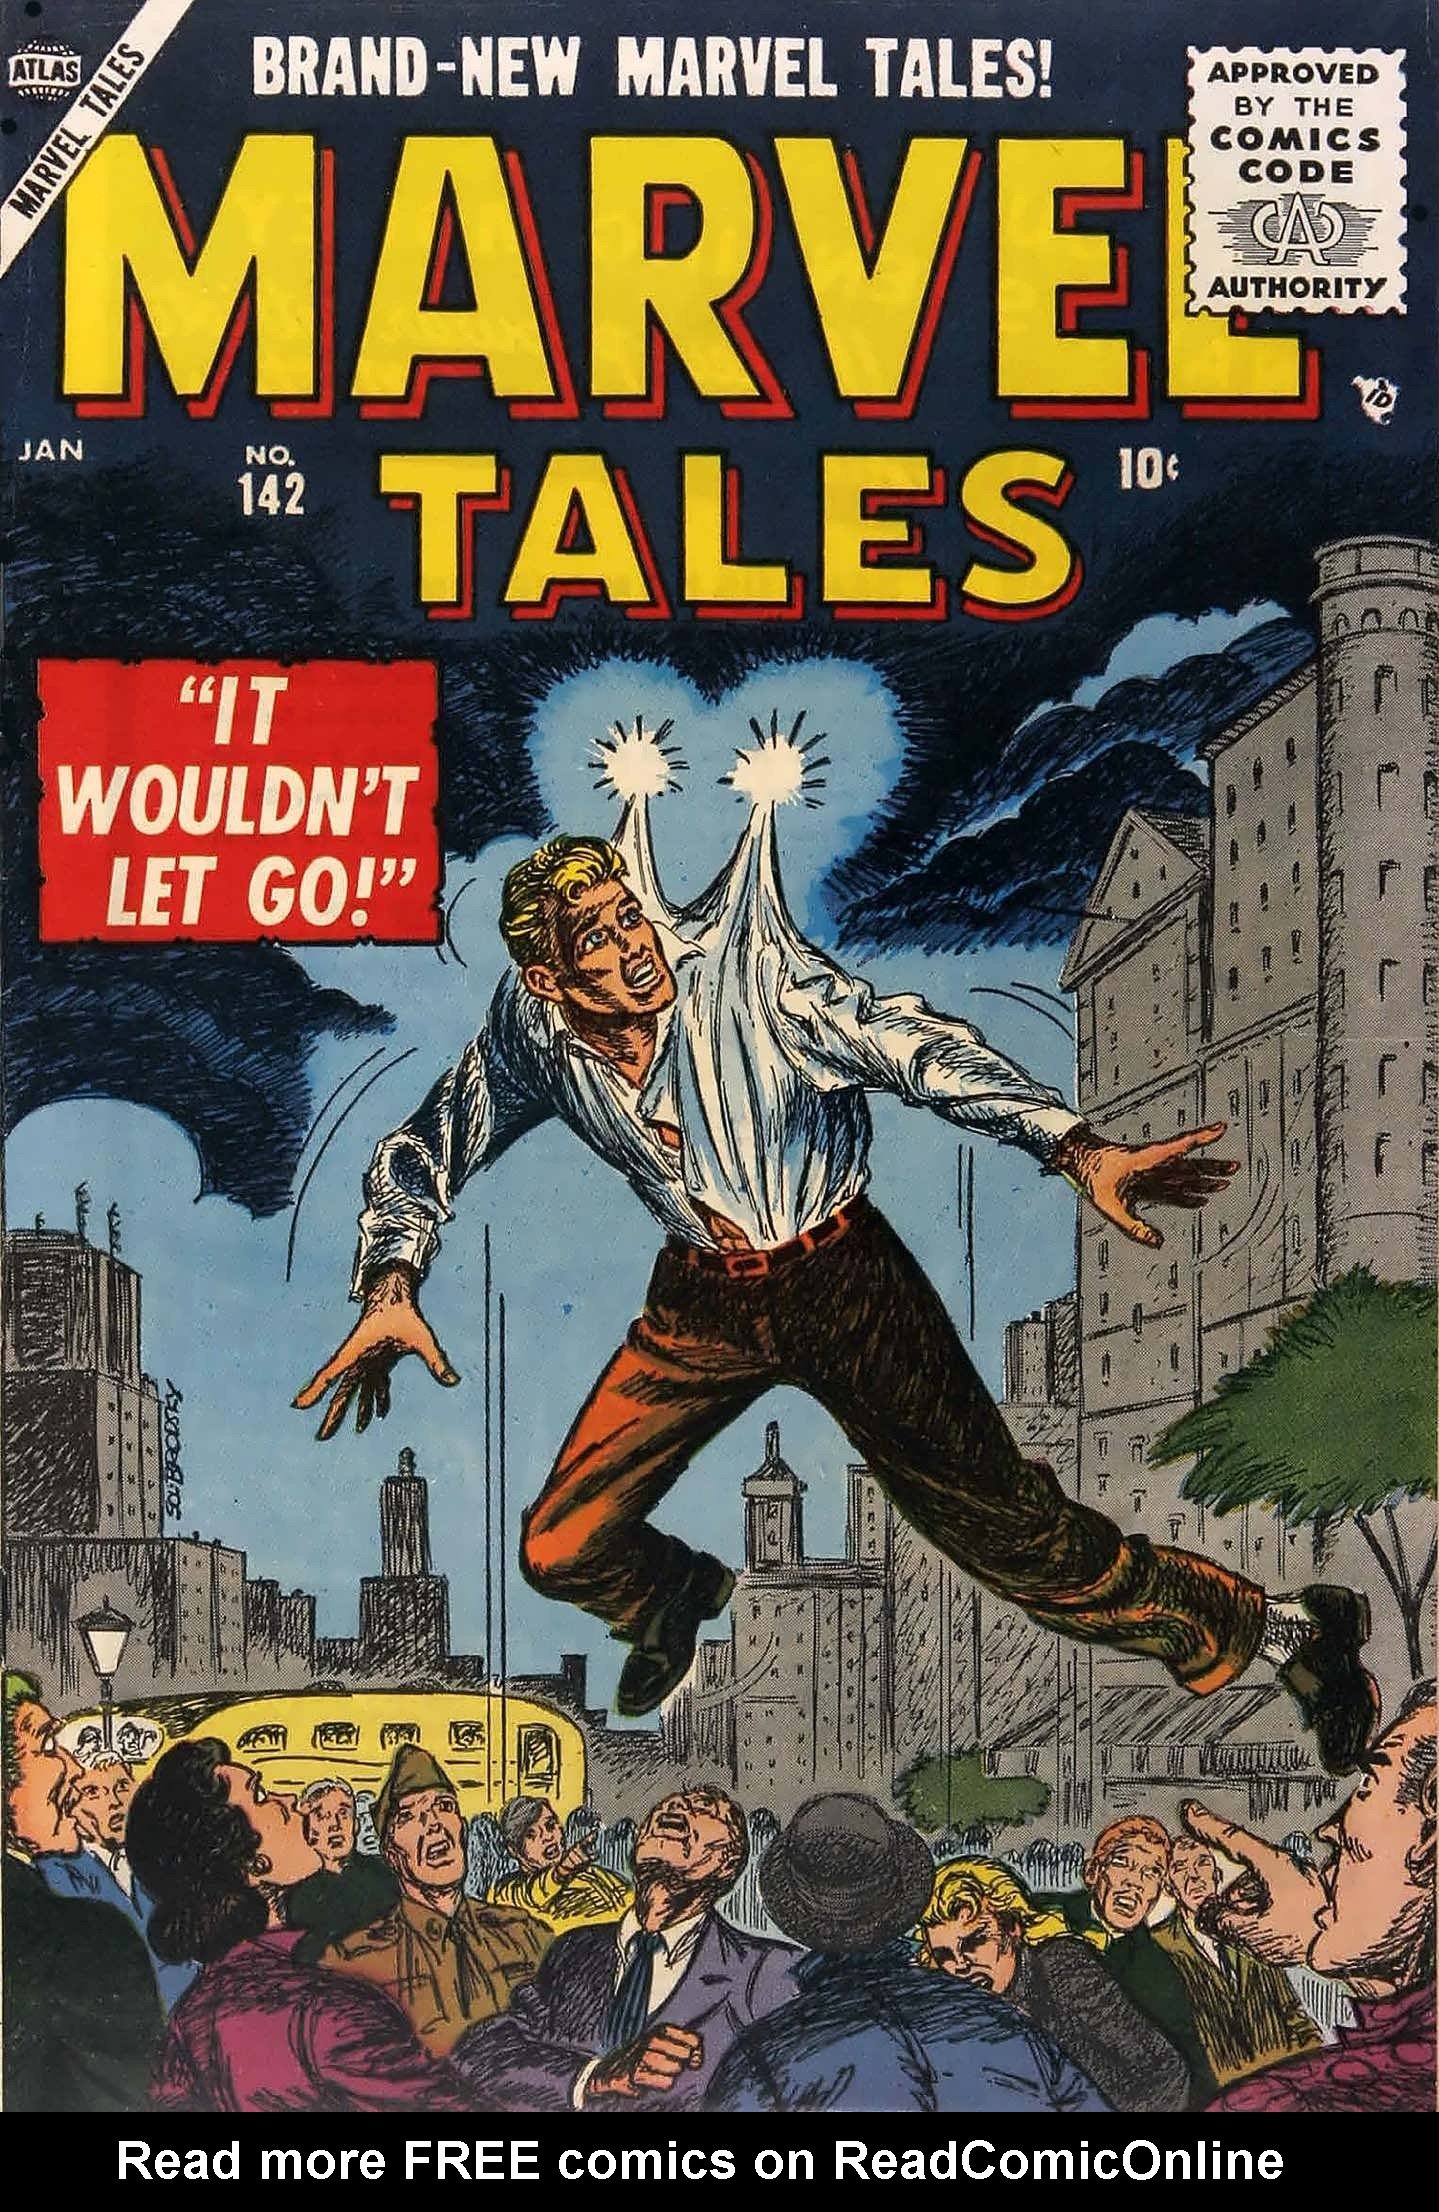 Marvel Tales (1949) 142 Page 1